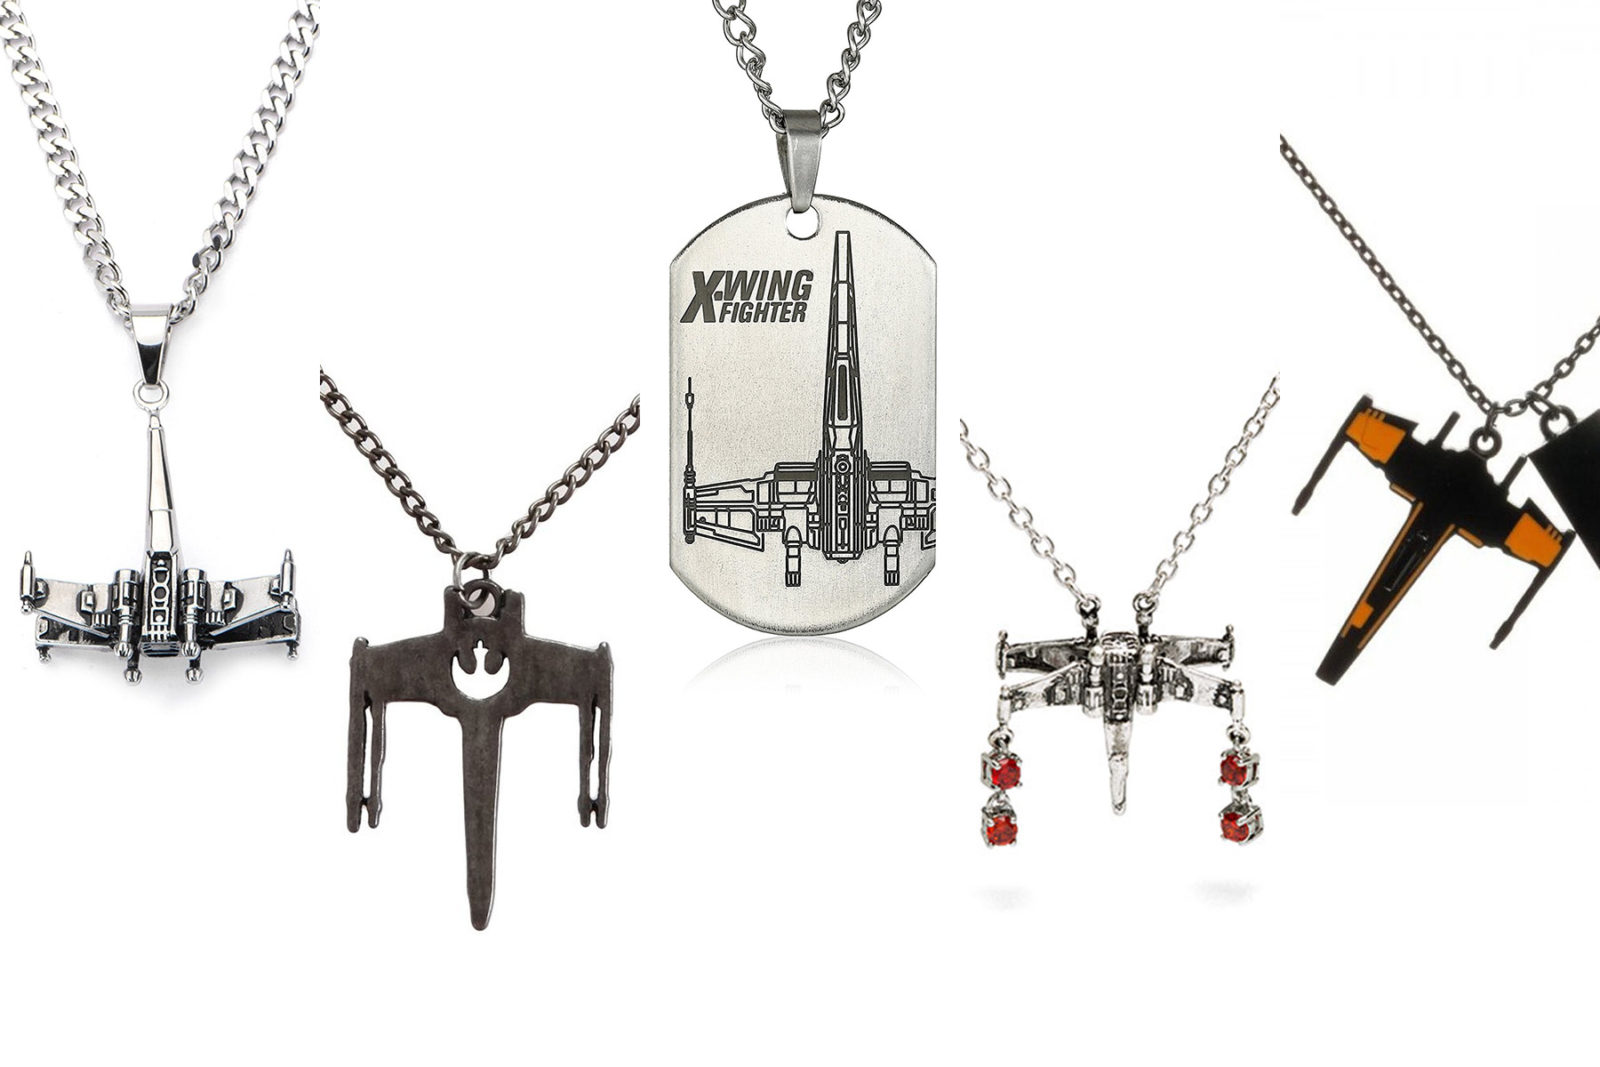 Leia's List – X-Wing Fighter Necklaces